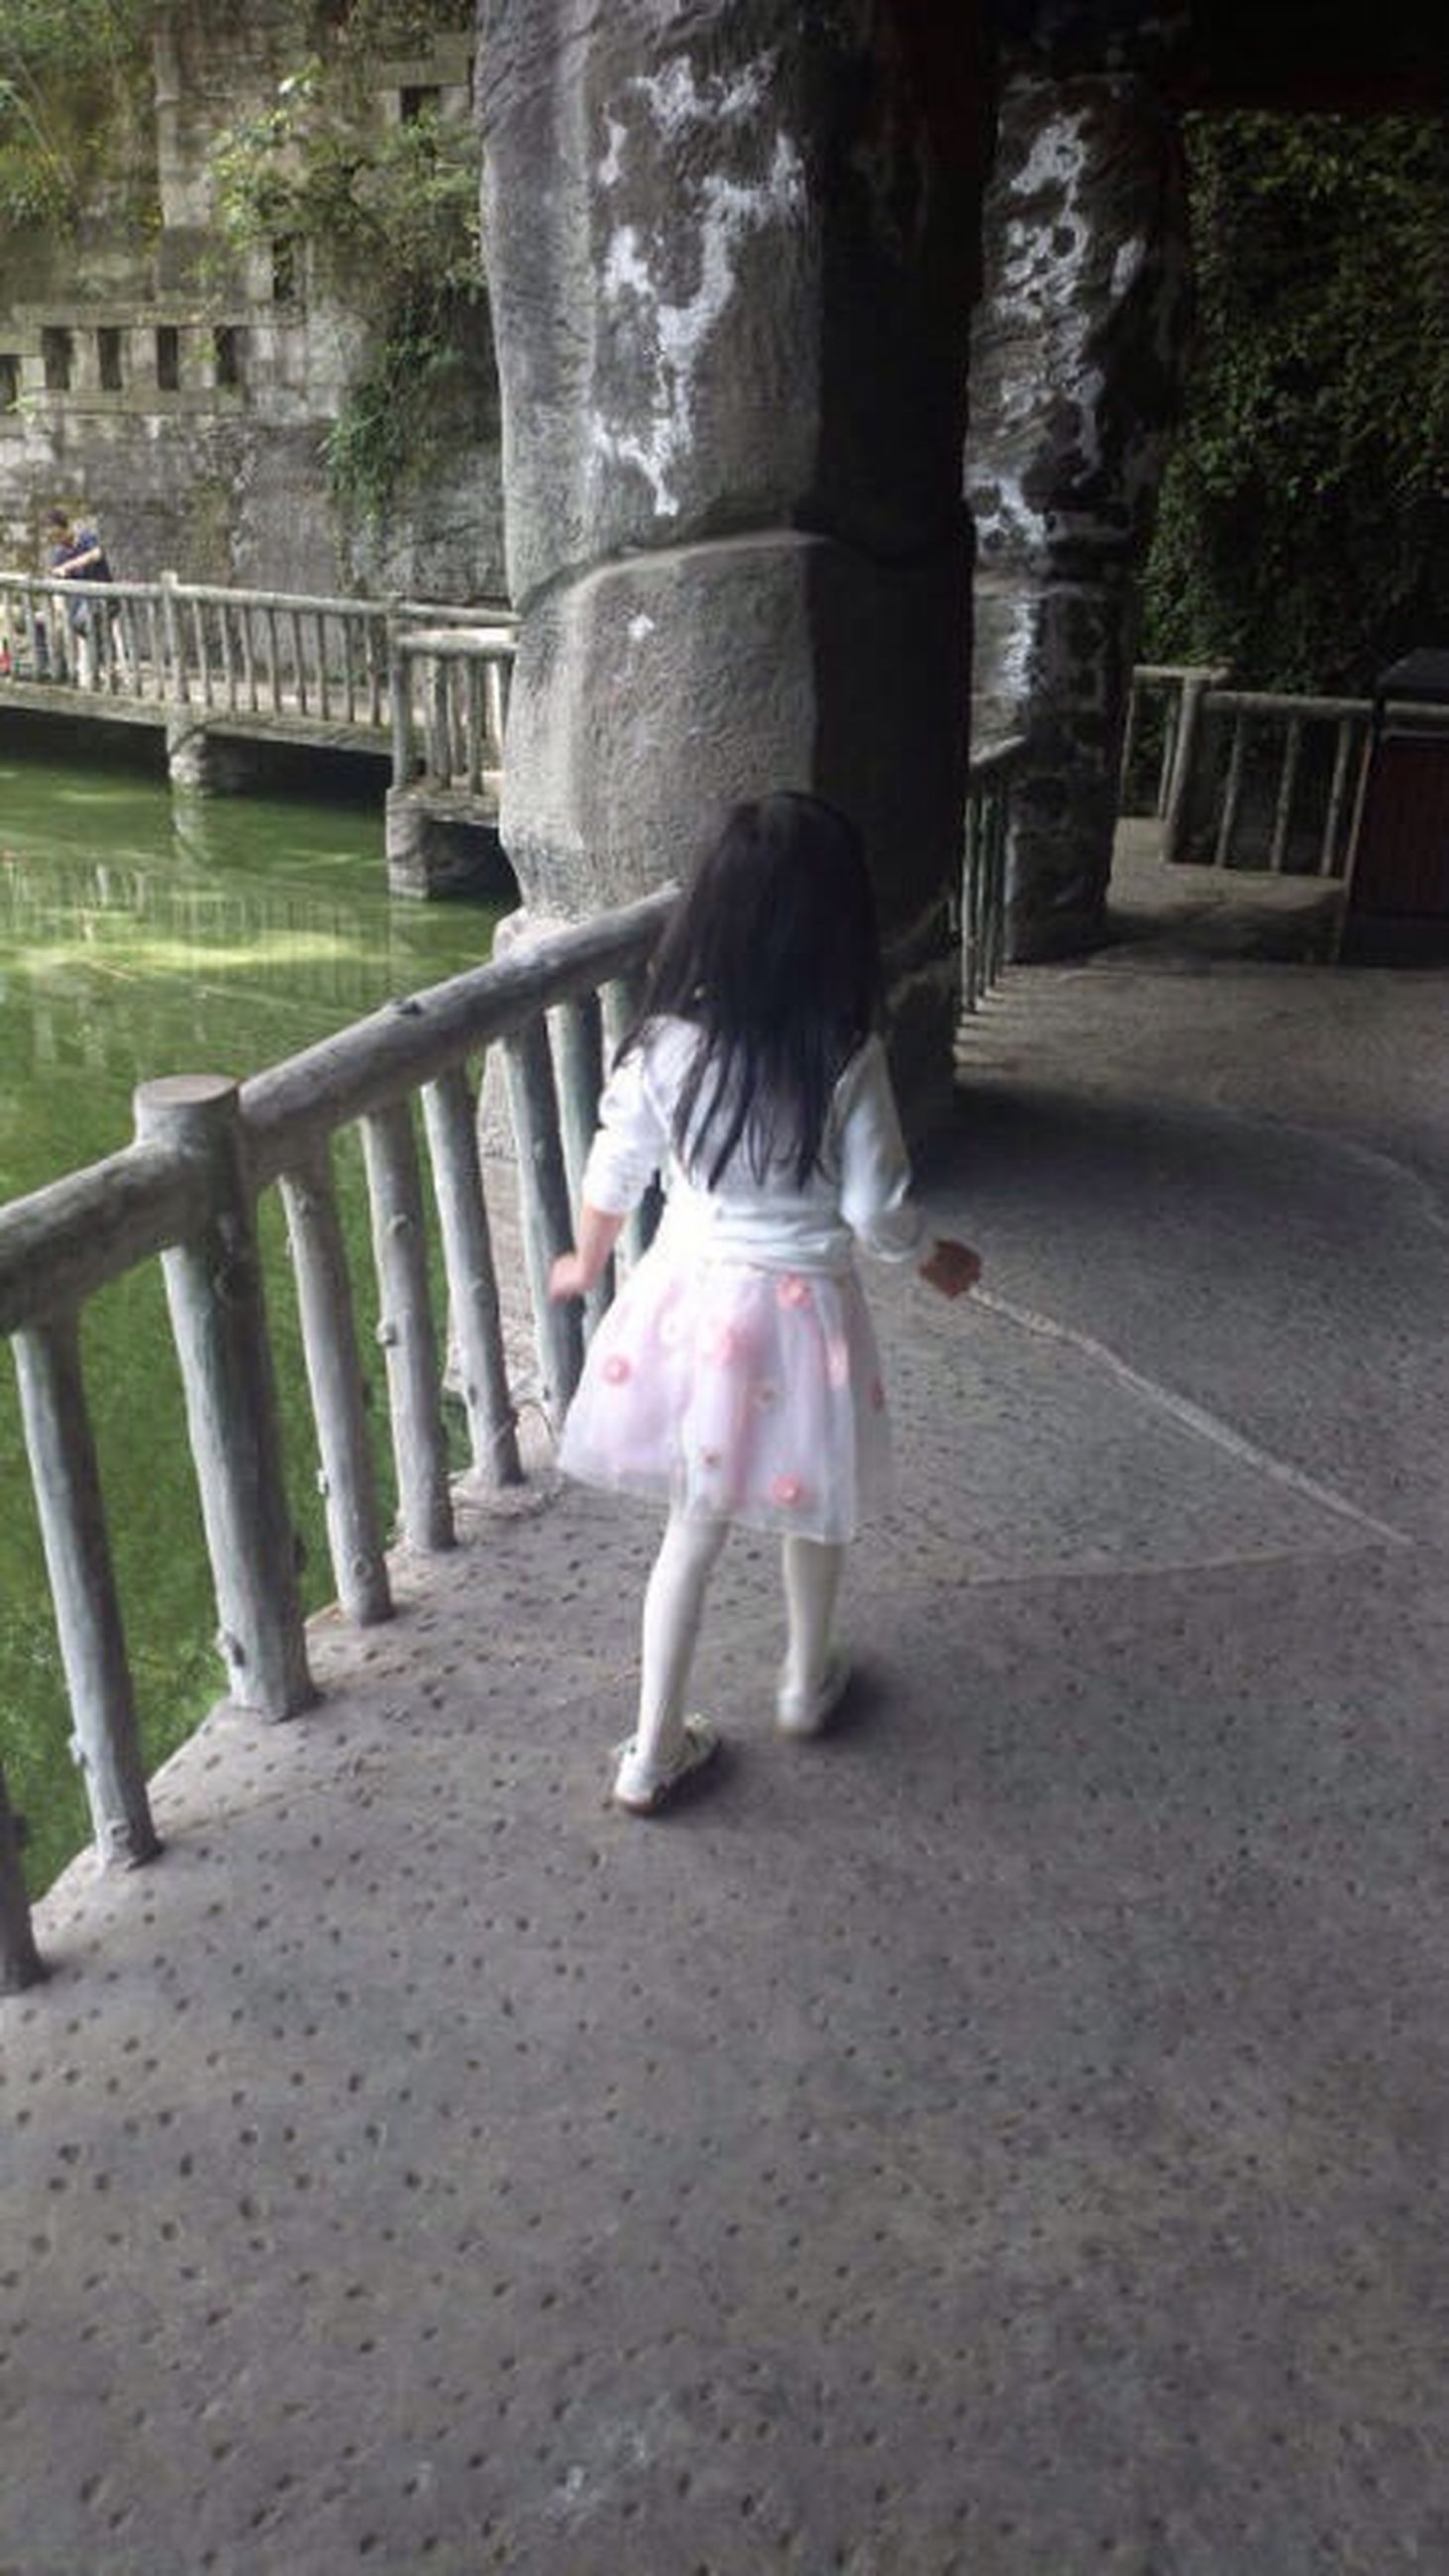 full length, rear view, lifestyles, casual clothing, childhood, girls, leisure activity, walking, elementary age, boys, person, togetherness, the way forward, park - man made space, road, tree, innocence